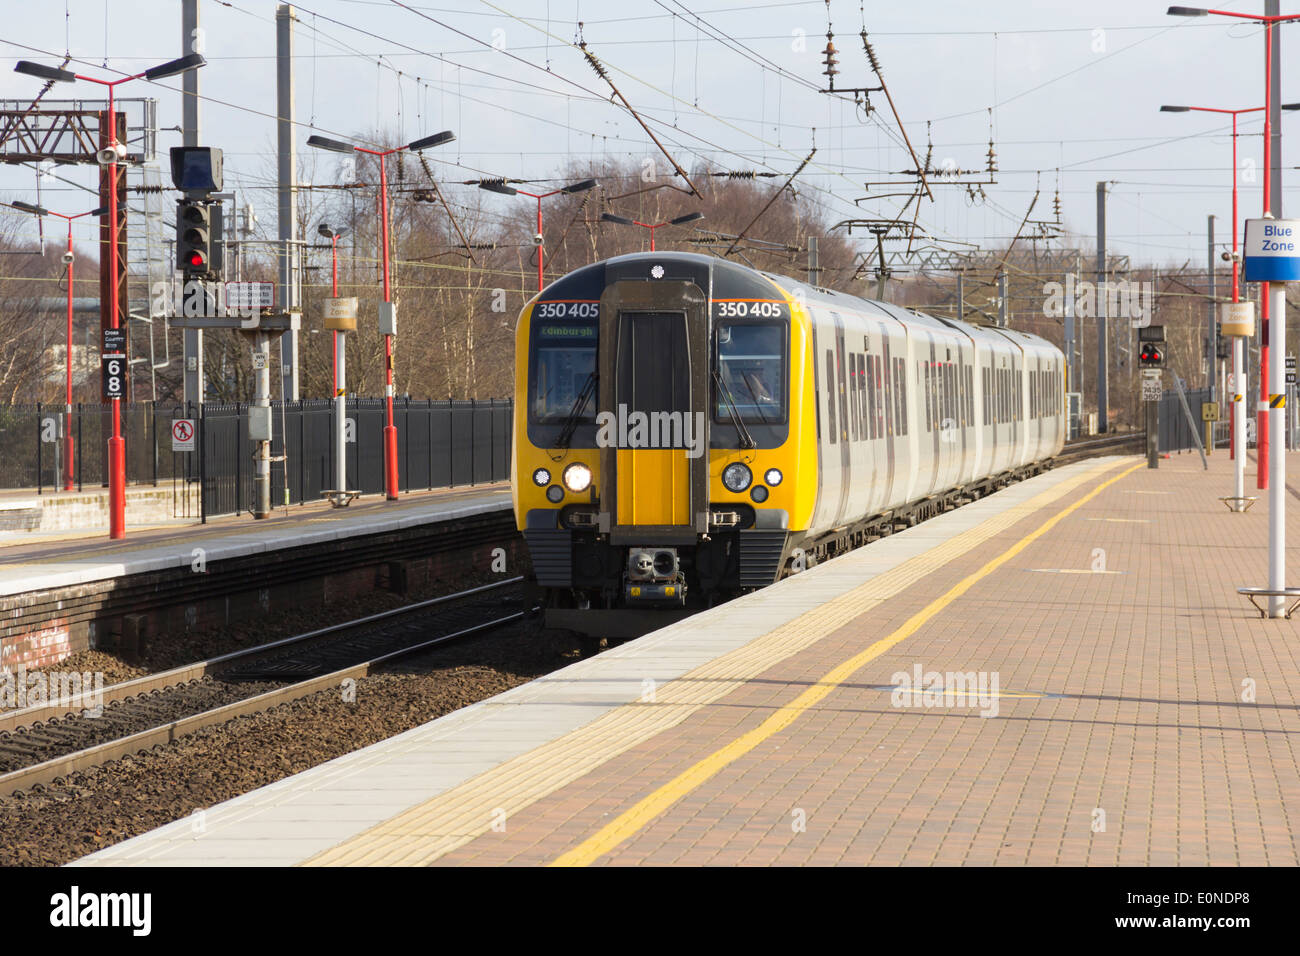 Manchester to Glasgow TransPennine Express Class 350 Desiro EMU train arriving at Wigan North Western Station. - Stock Image